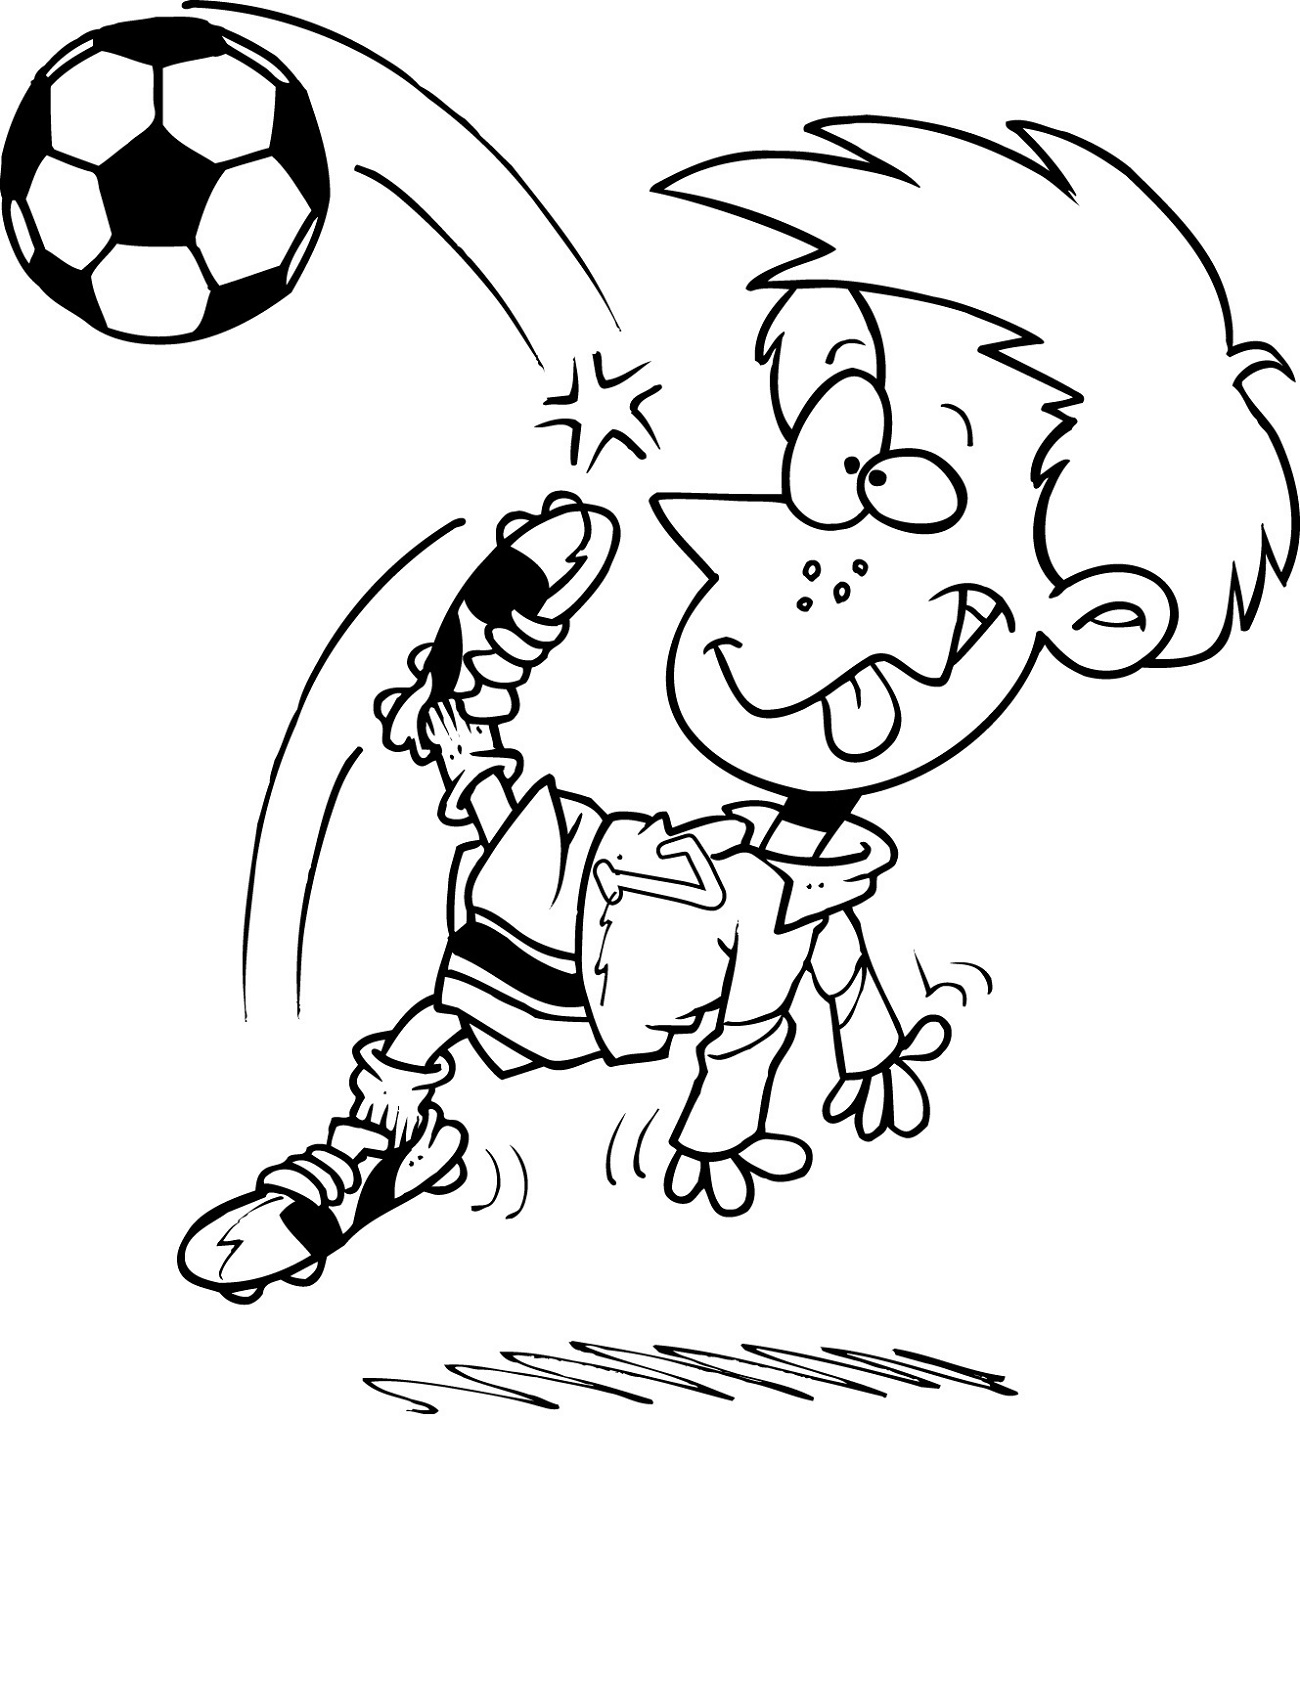 Printable Coloring for Kids Soccer